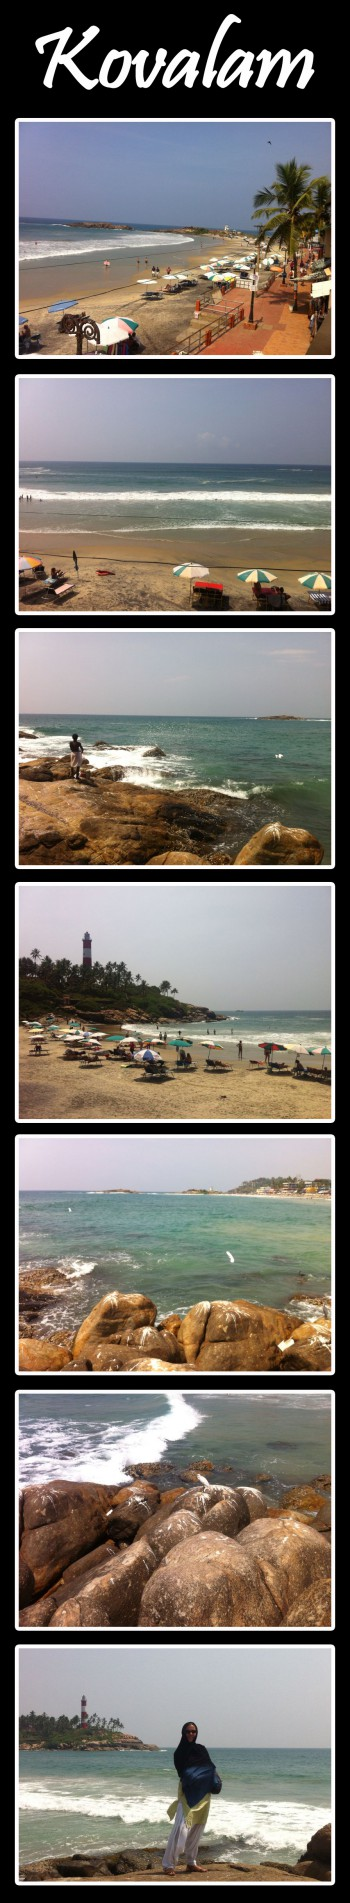 India,Kerala,Kovalam,Kovalam beach